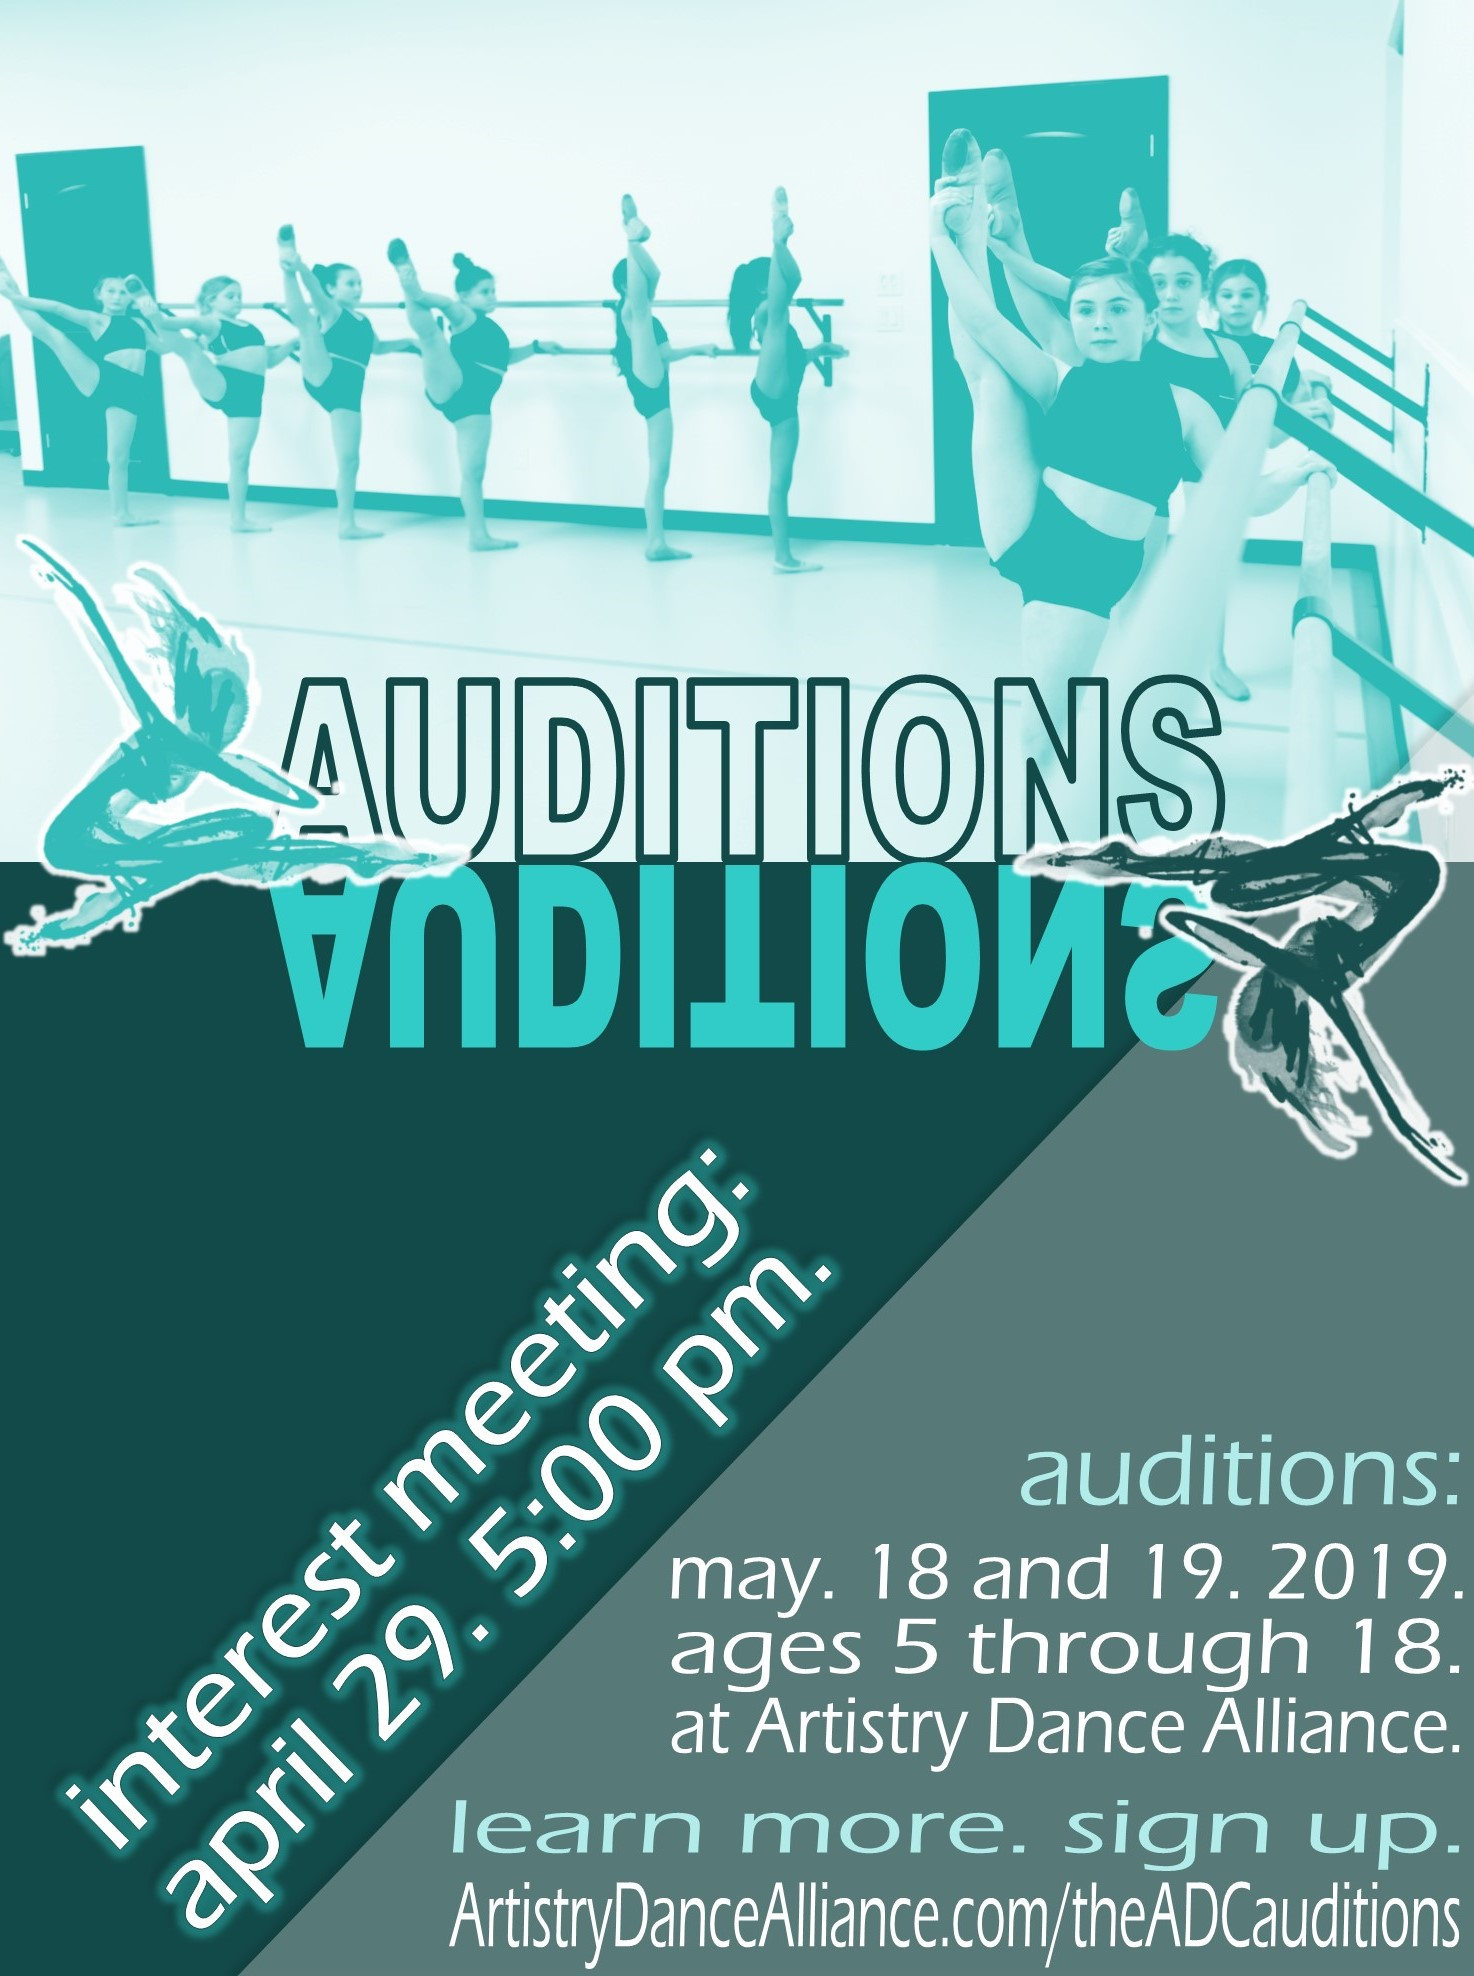 Audition flyer_2019.jpg